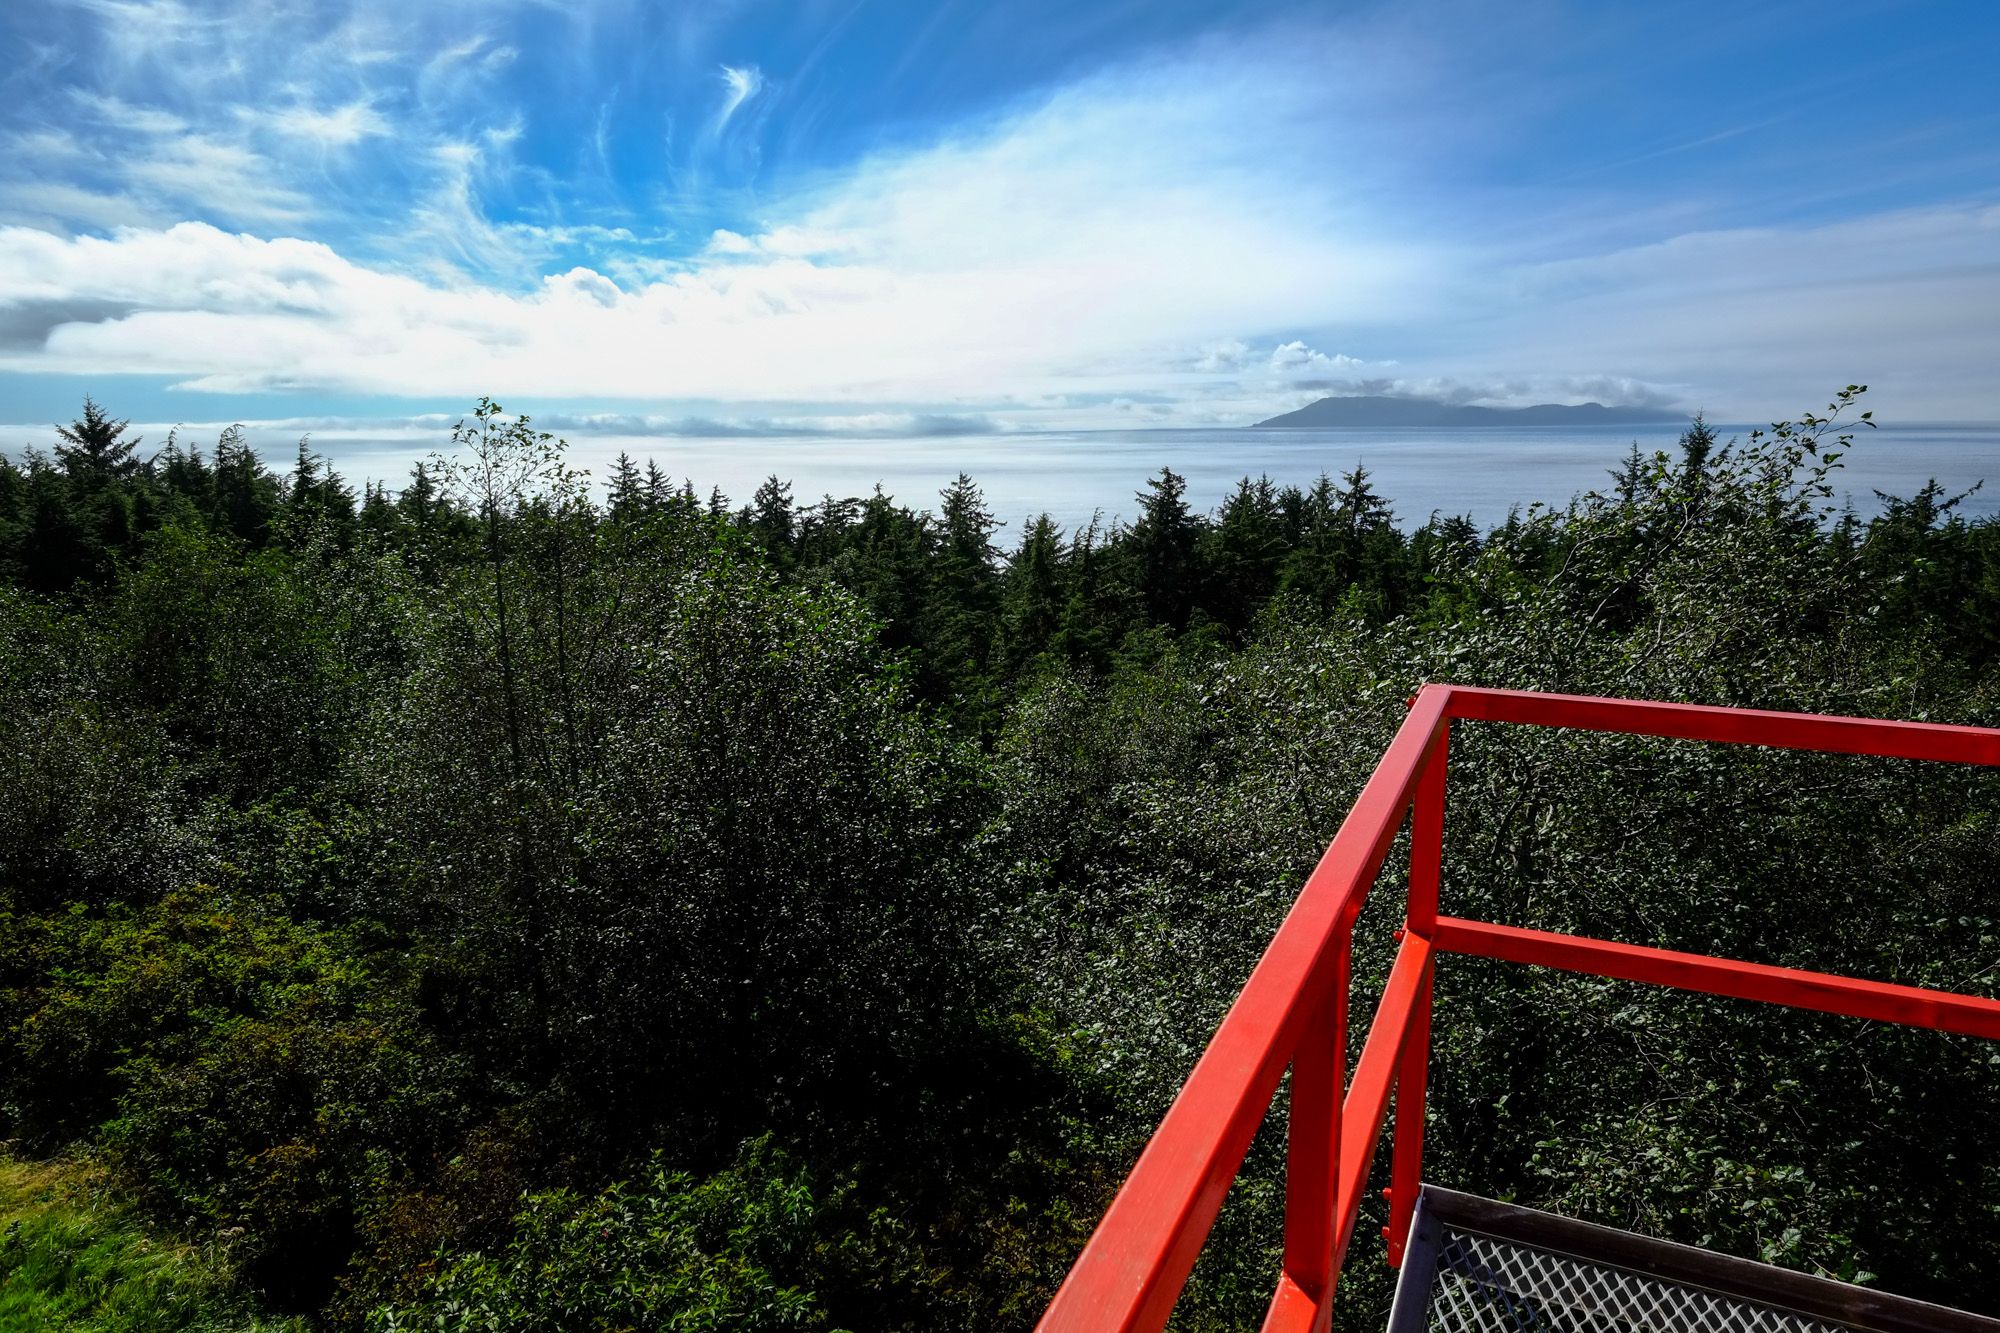 View from a lighthouse towards the Pacific